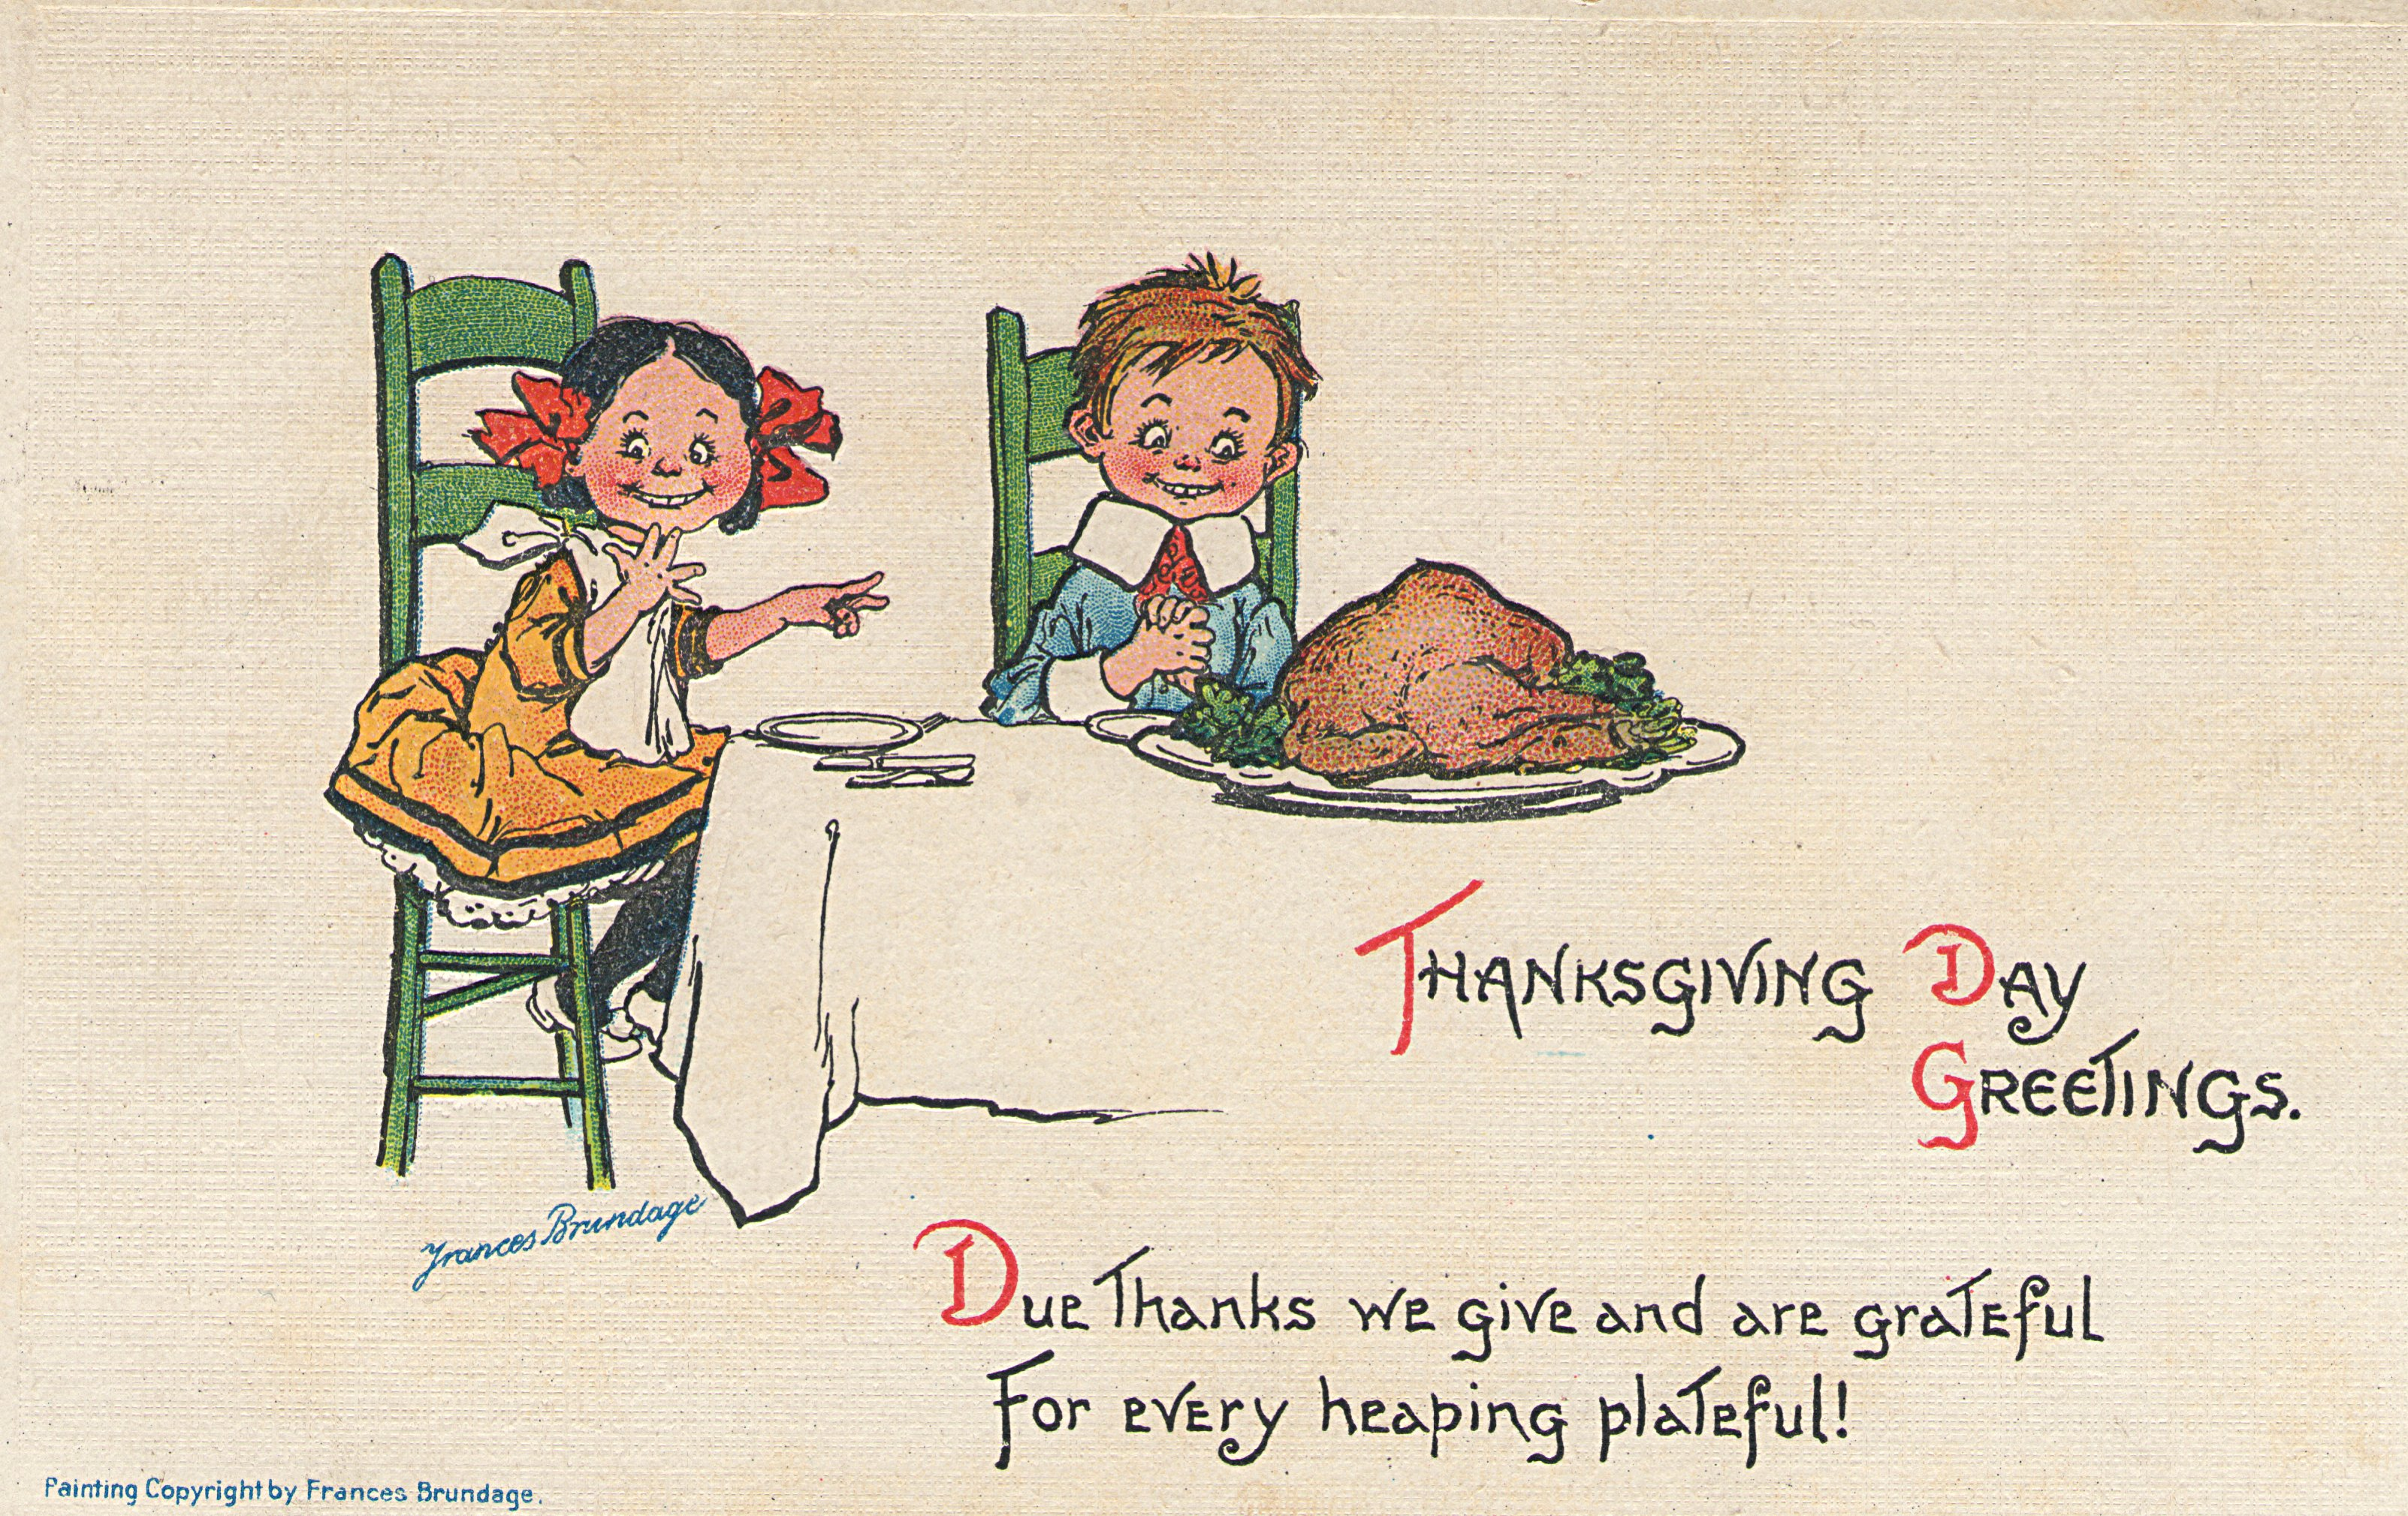 Frances_Brundage_Thanksgiving.jpg